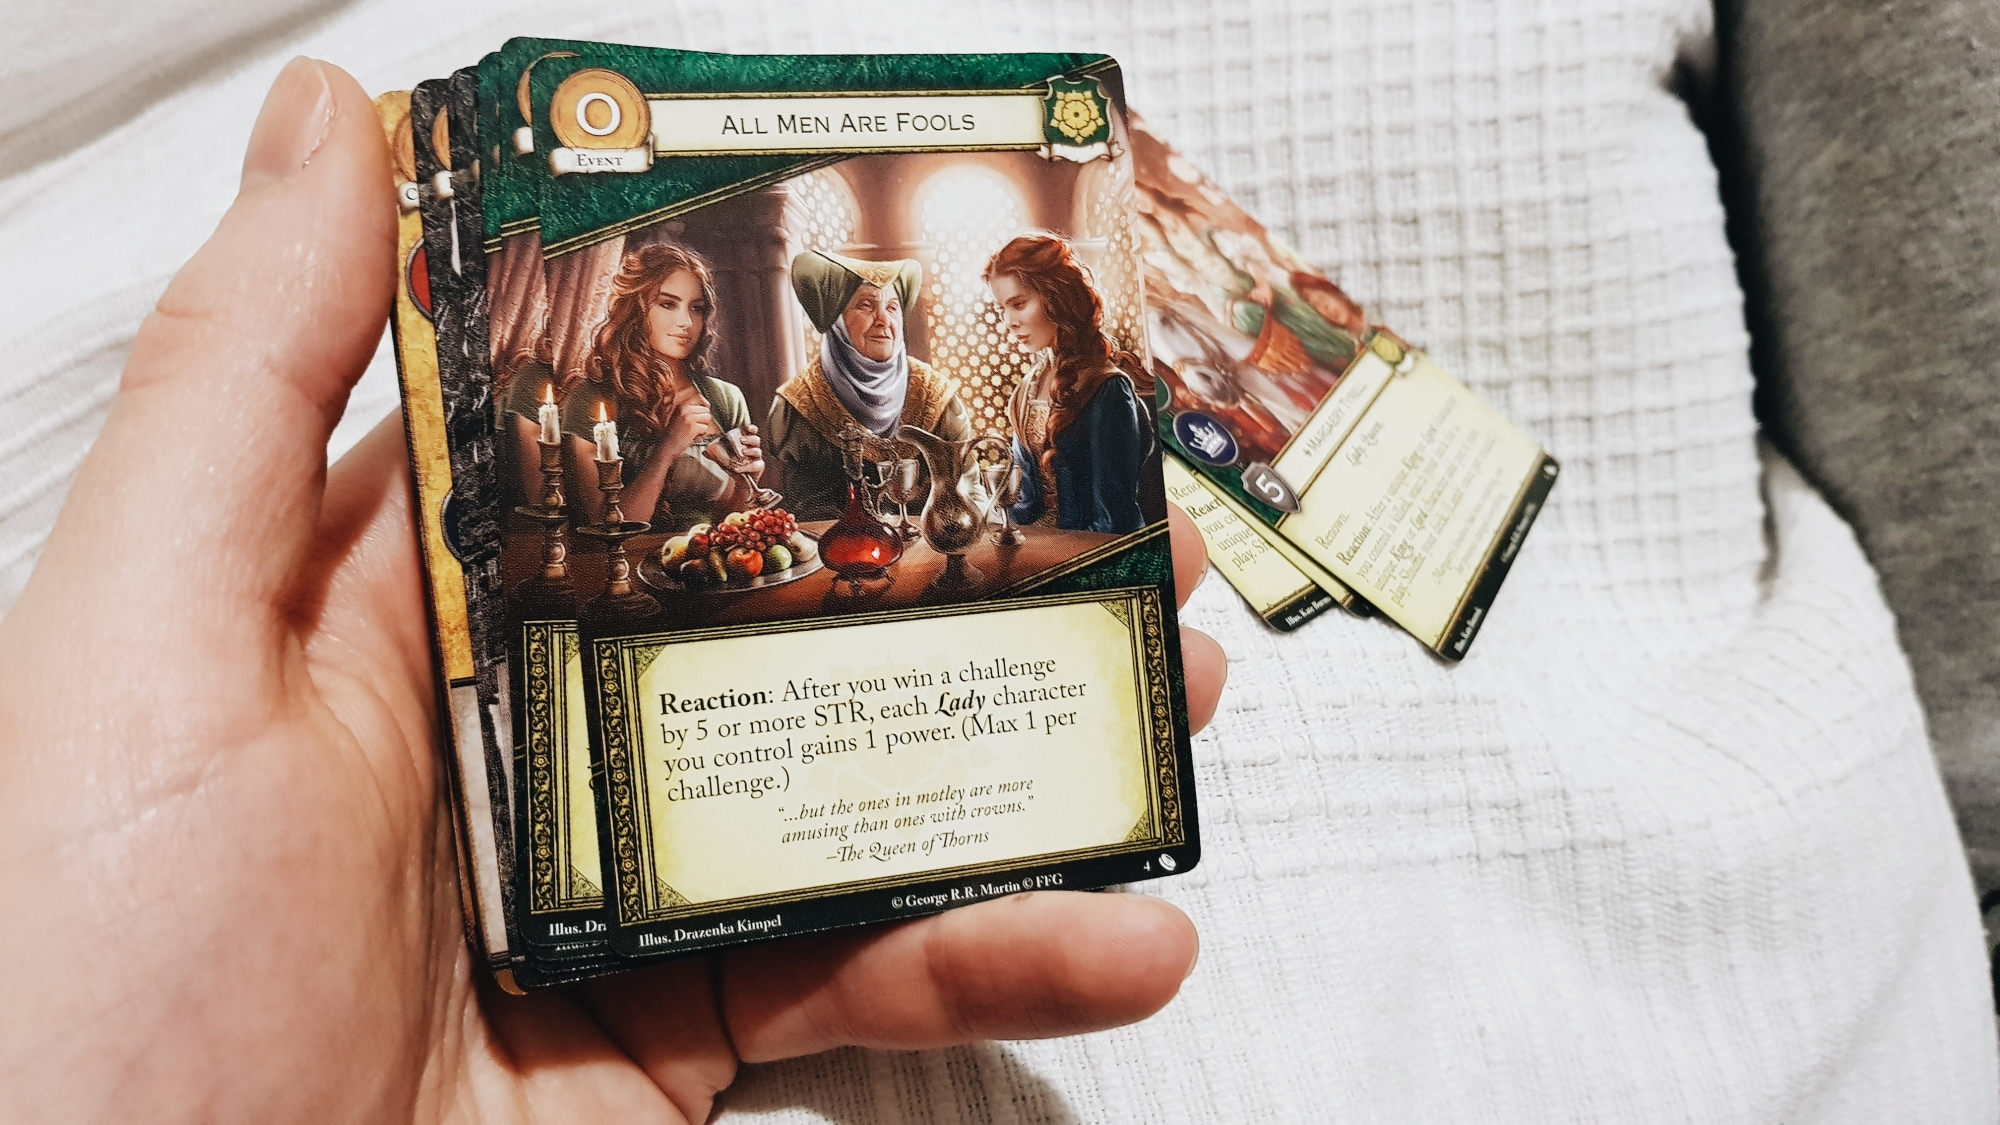 A photo of the card All Men Are Fools from the expansion pack of the same name as part of the Game of Thrones Card Game series. The card shows three ladies sat around a table.